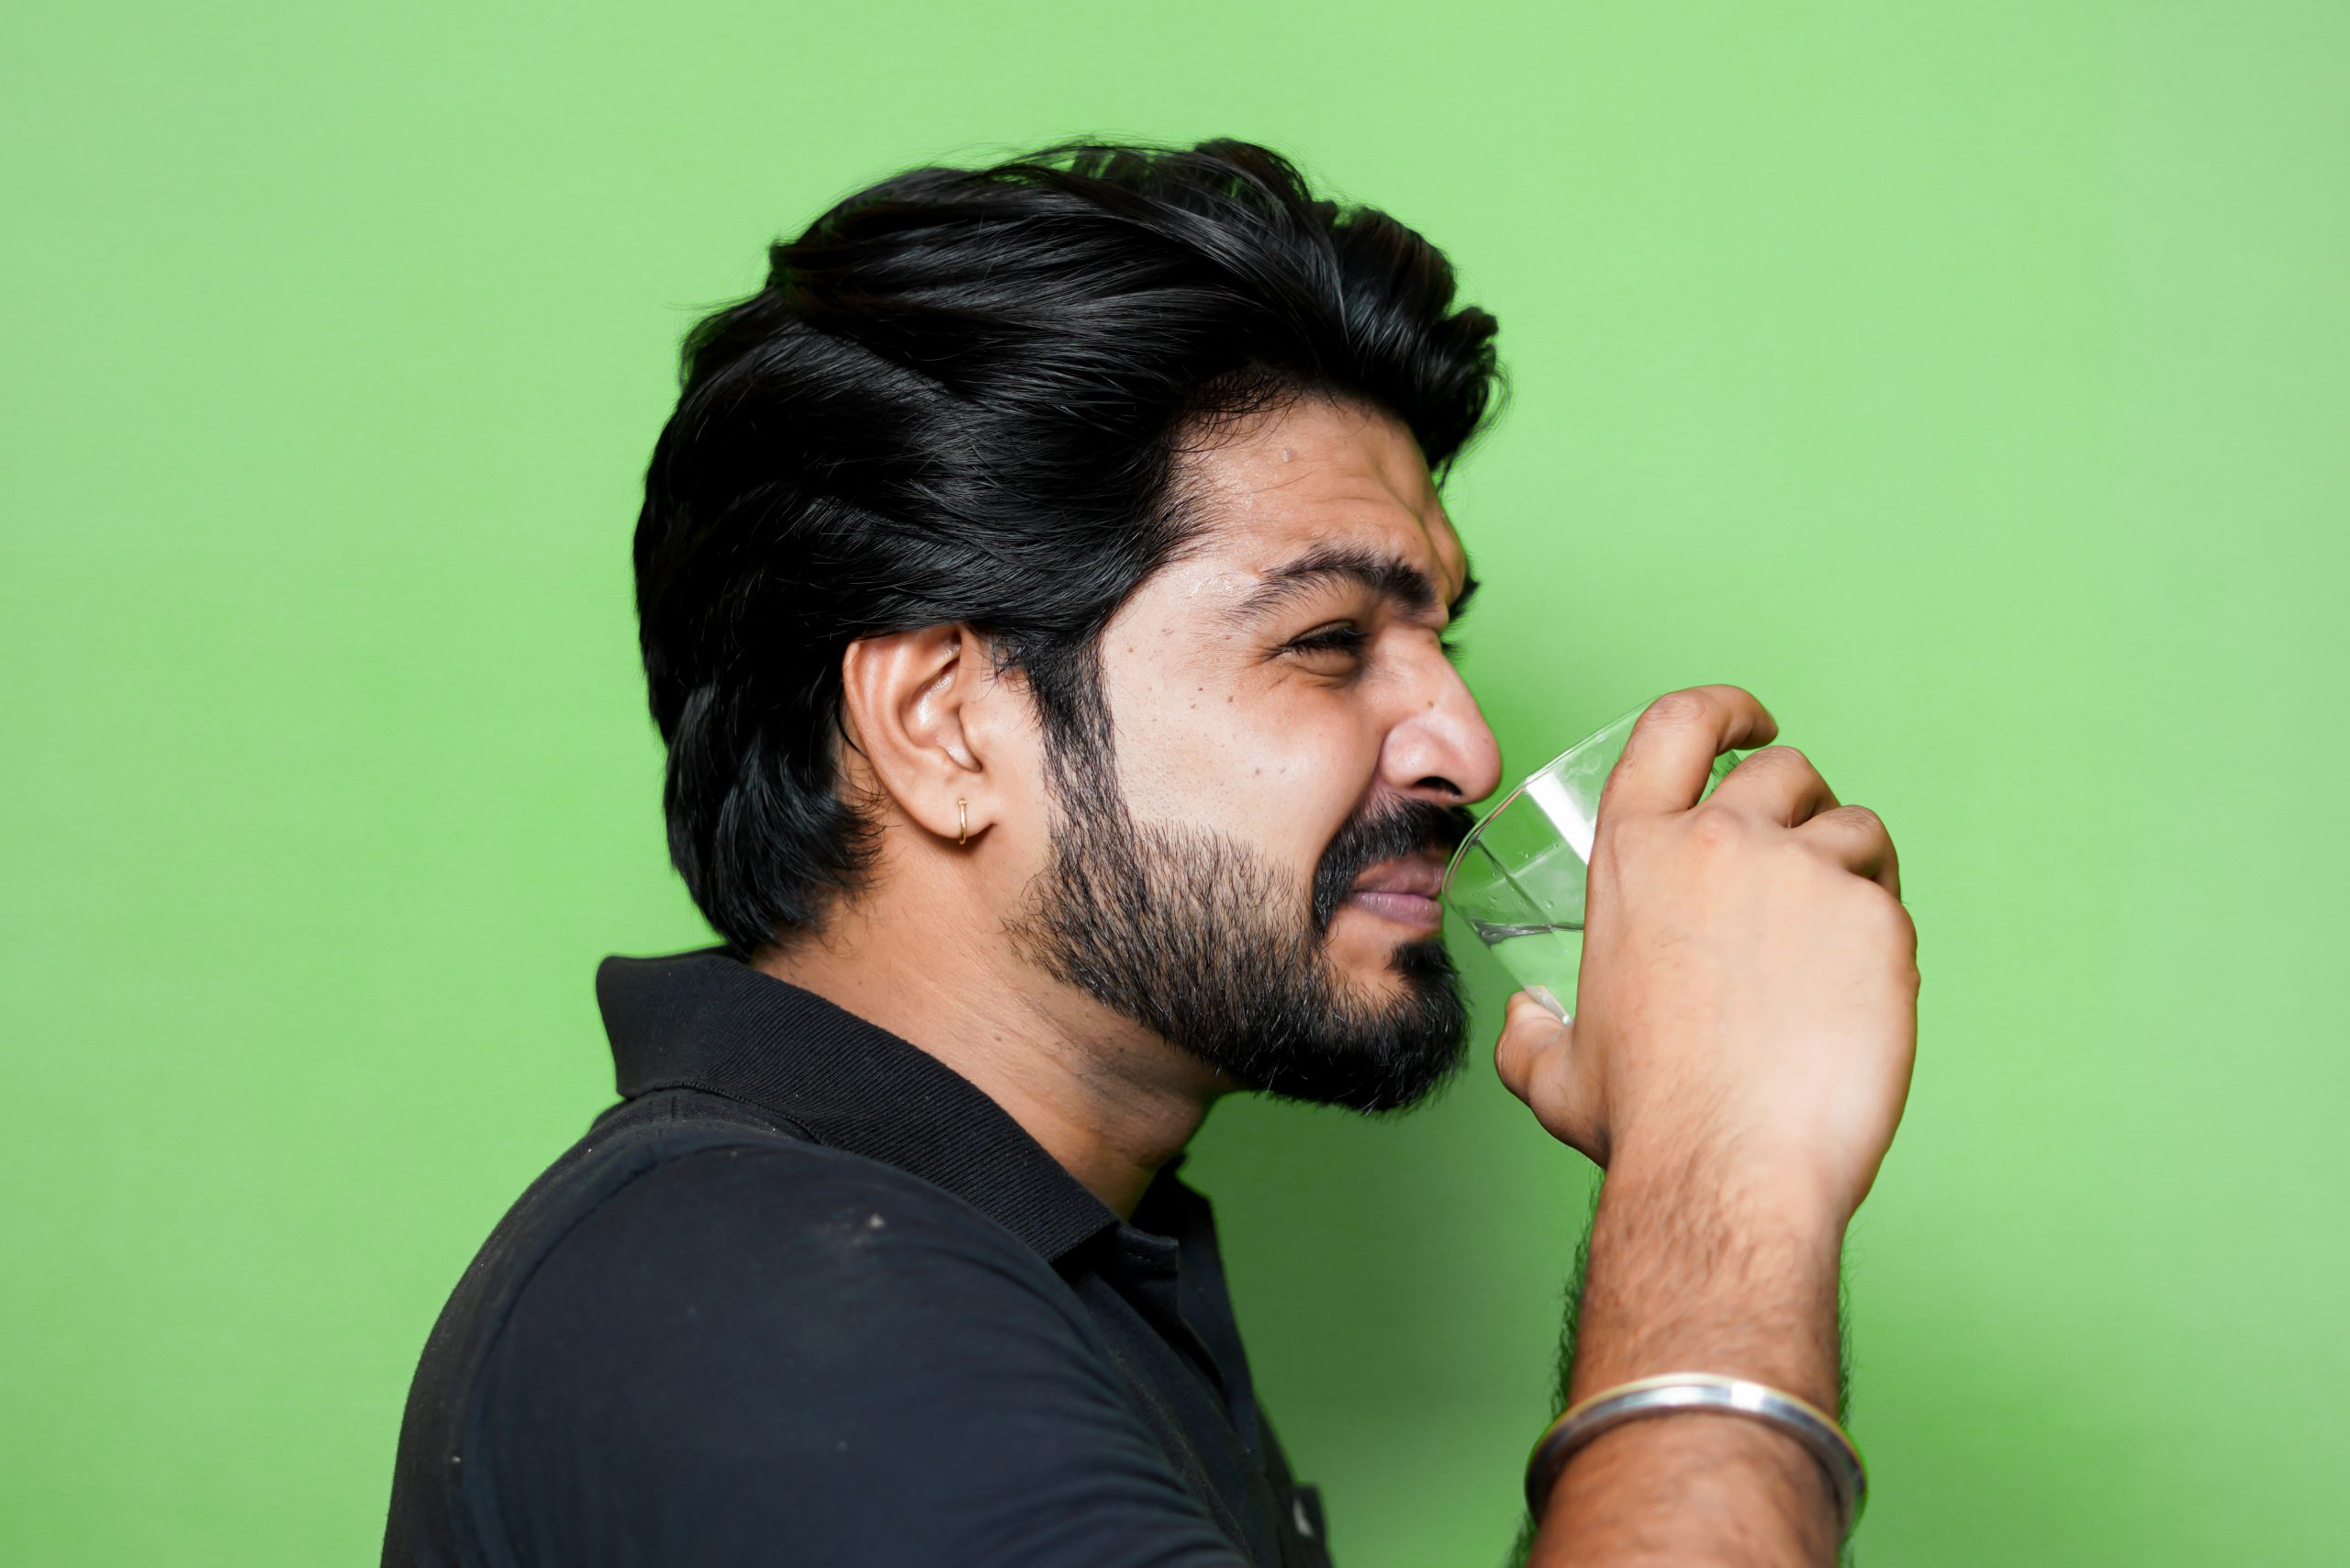 Man drinking something with expression